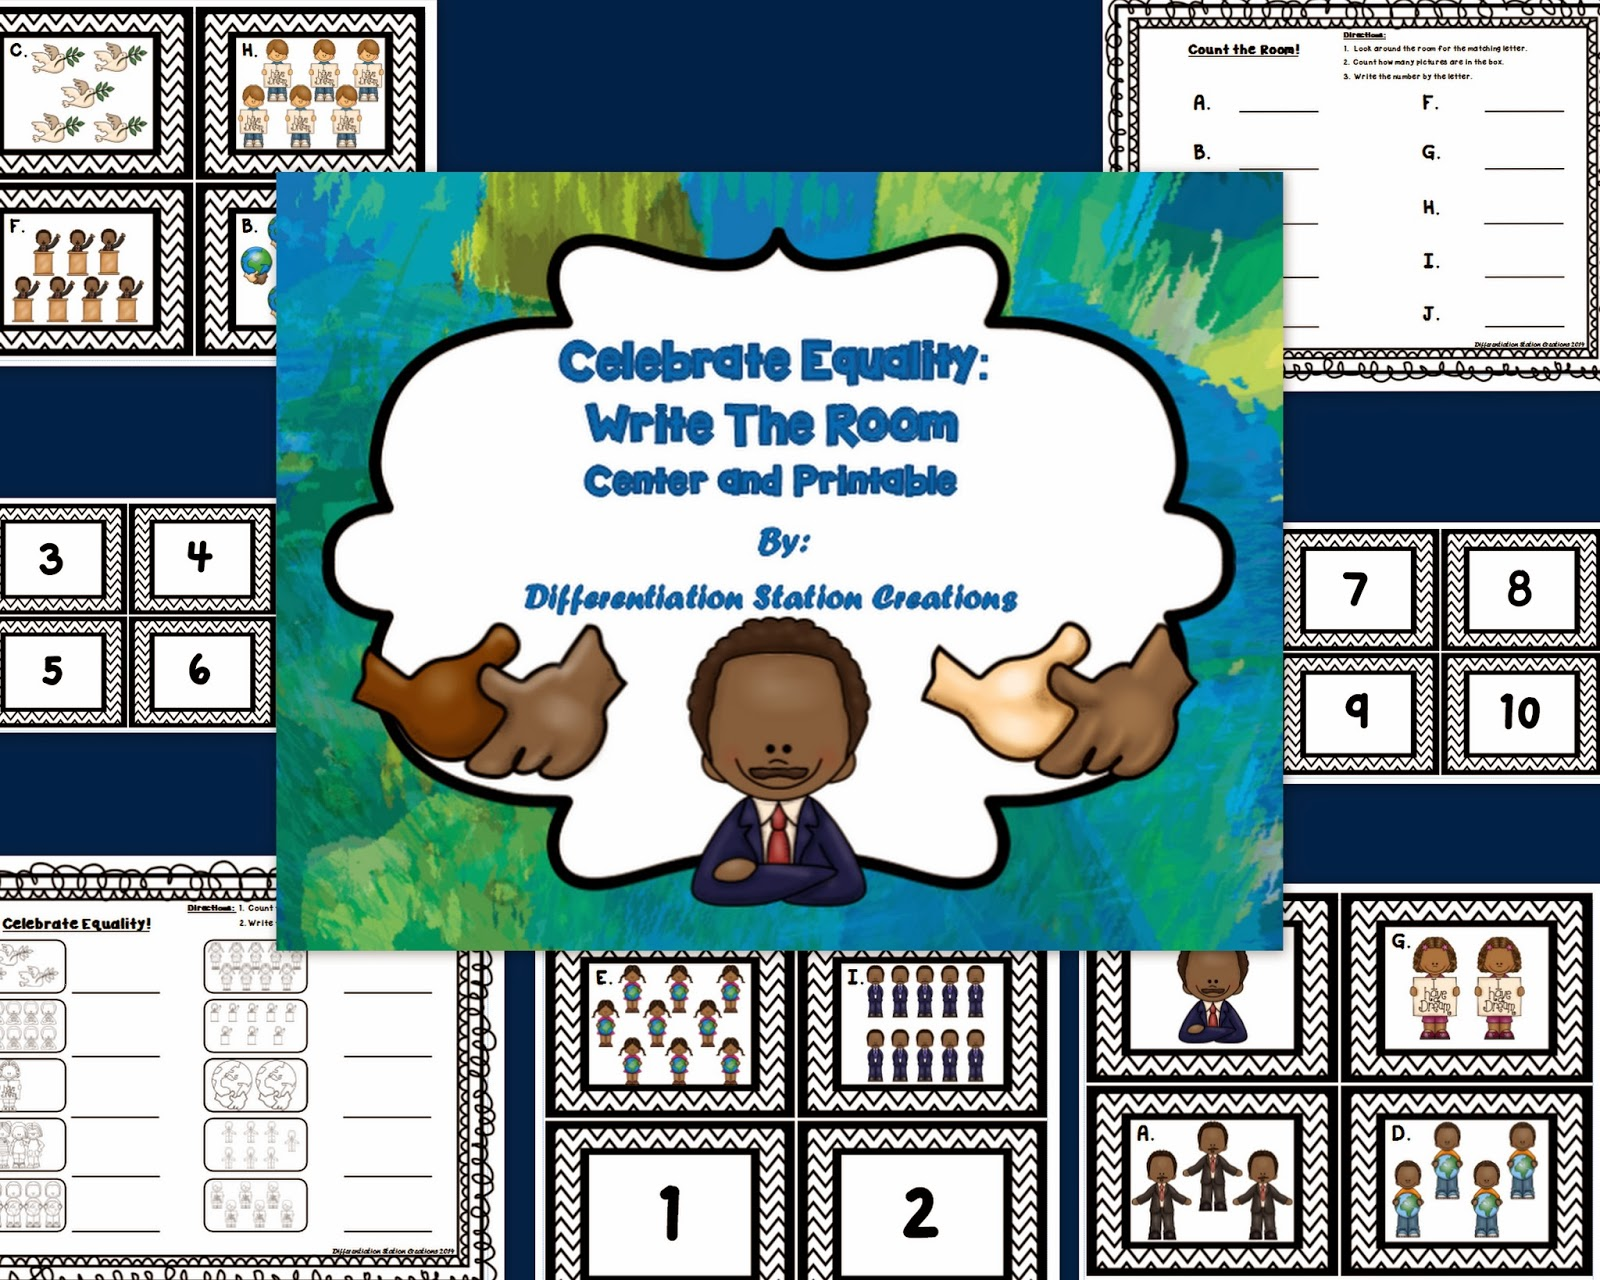 http://www.teacherspayteachers.com/Product/FREE-Celebrate-Equality-Count-and-Write-the-Room-Martin-Luther-King-Jr-1053179